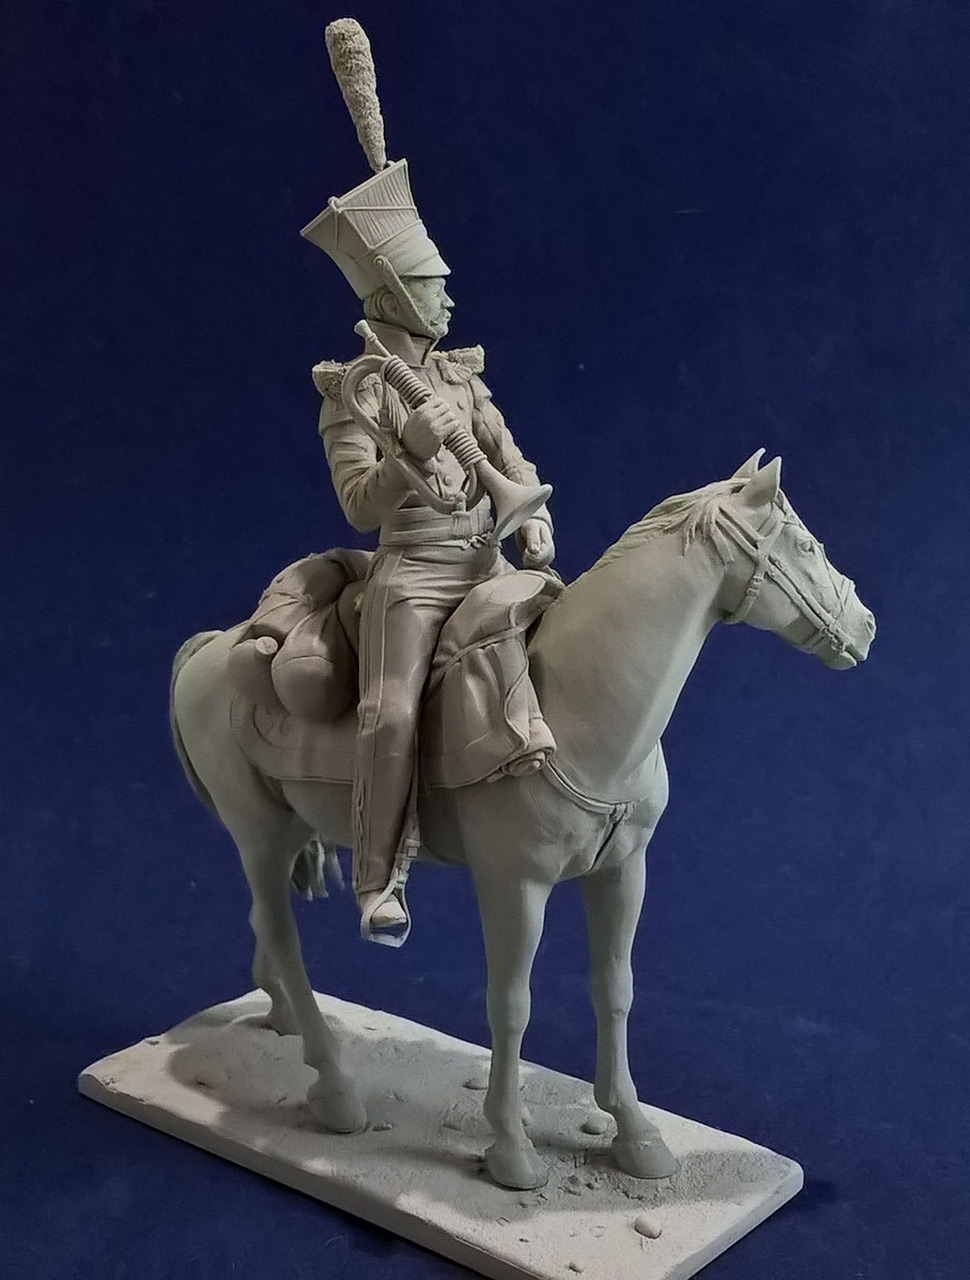 Sculpture: Bugler, army lancers regt, Russia, 1809-14, photo #14